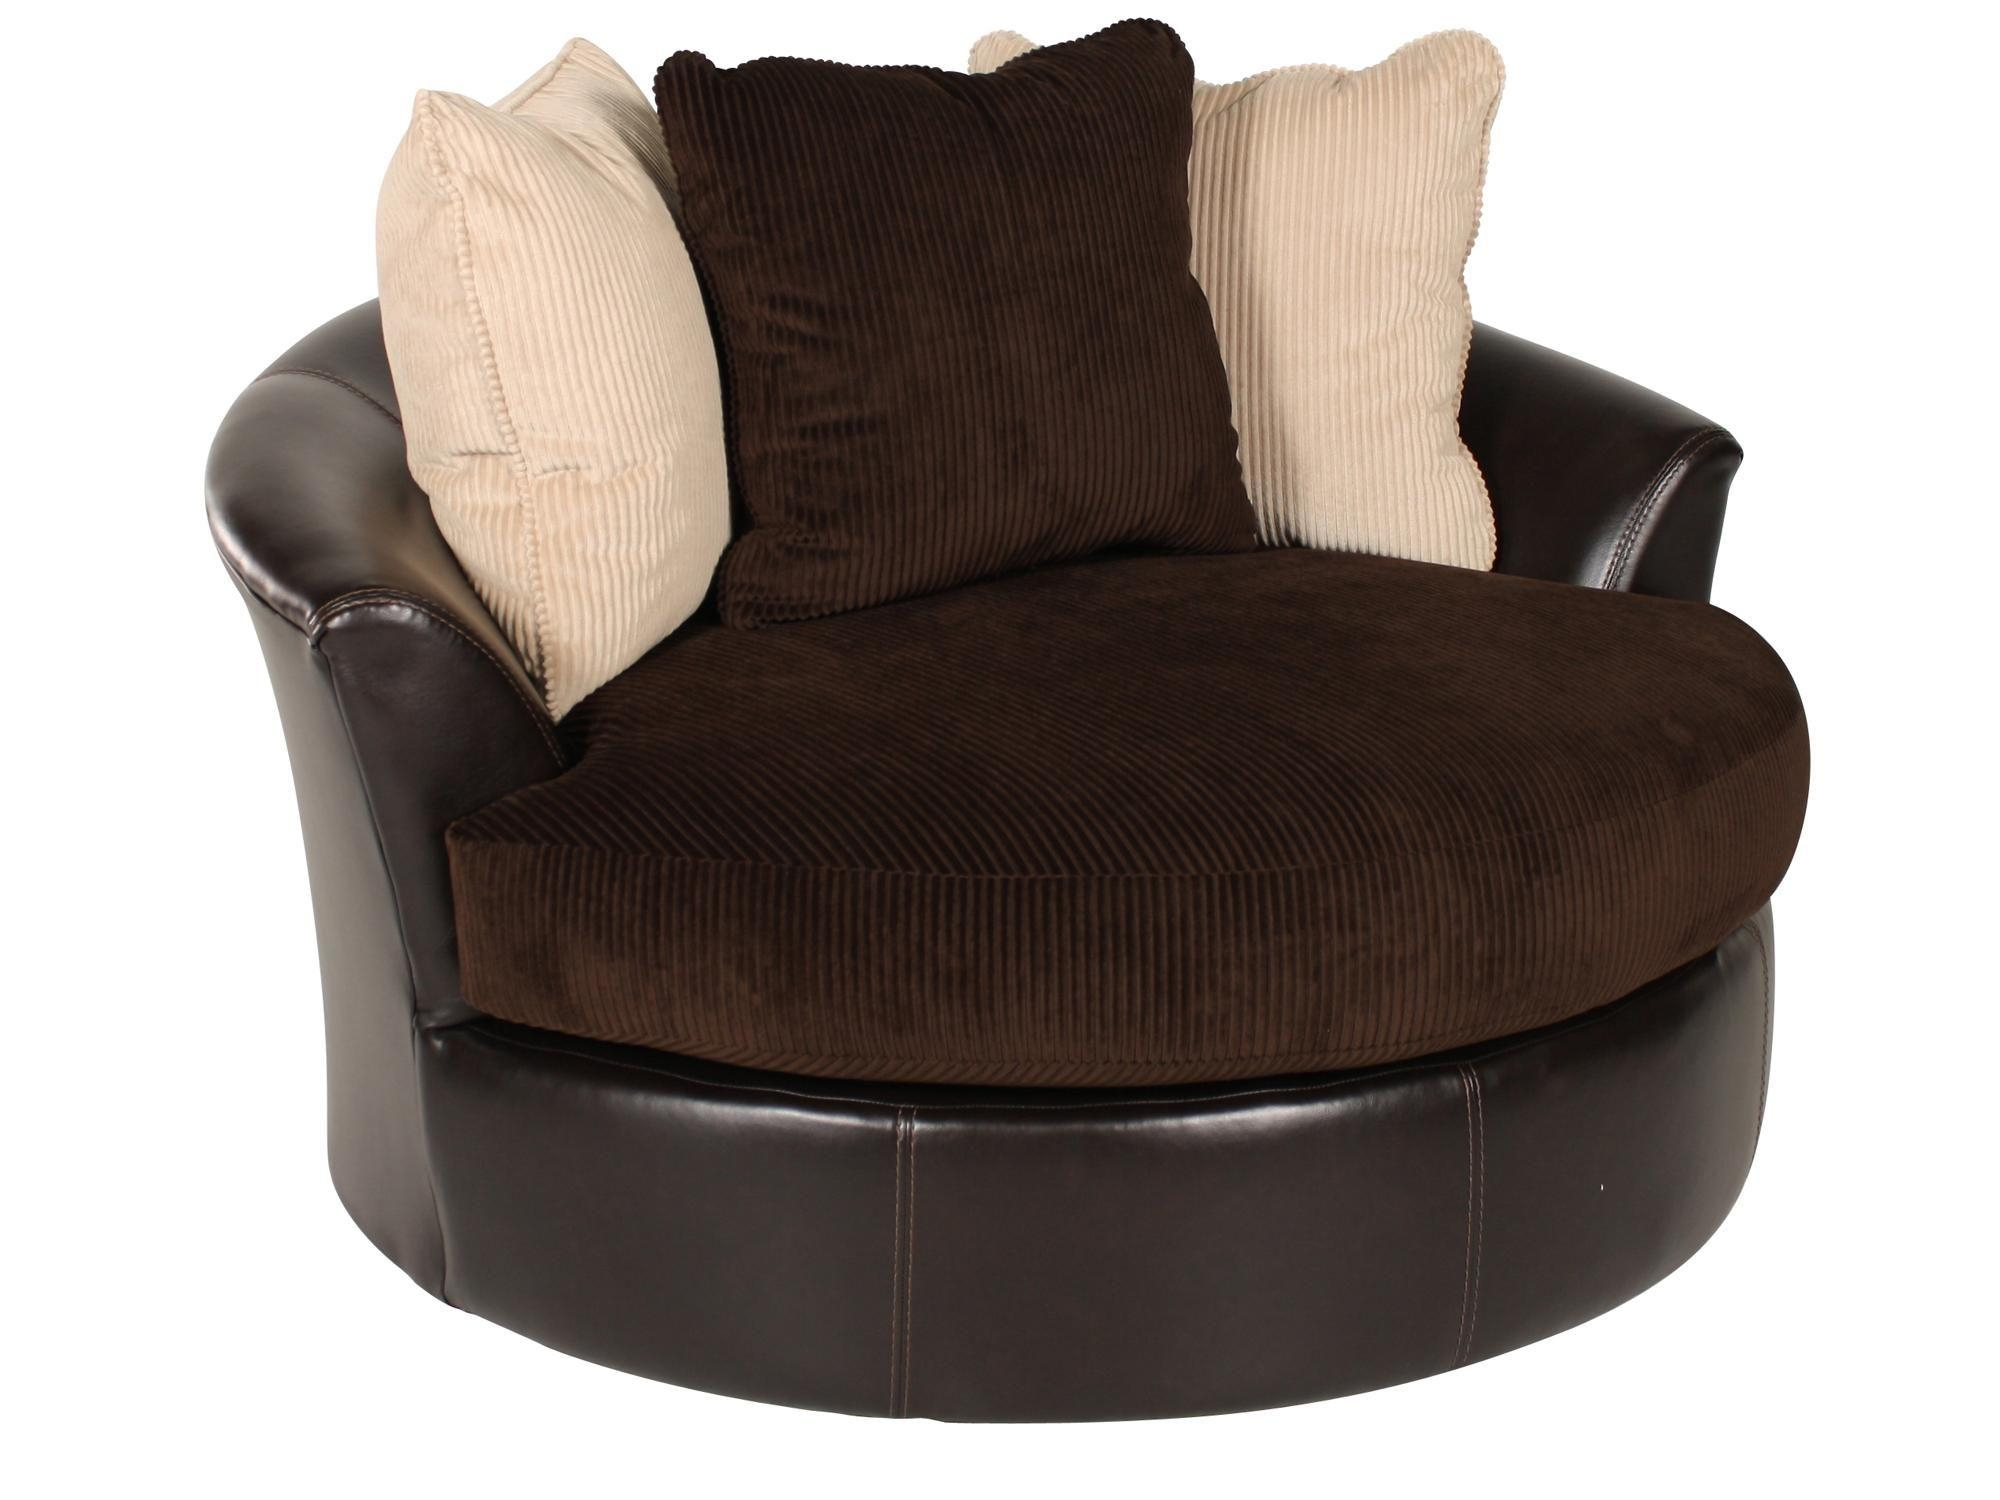 20 Best Collection Of Round Sofa Chair Sofa Ideas